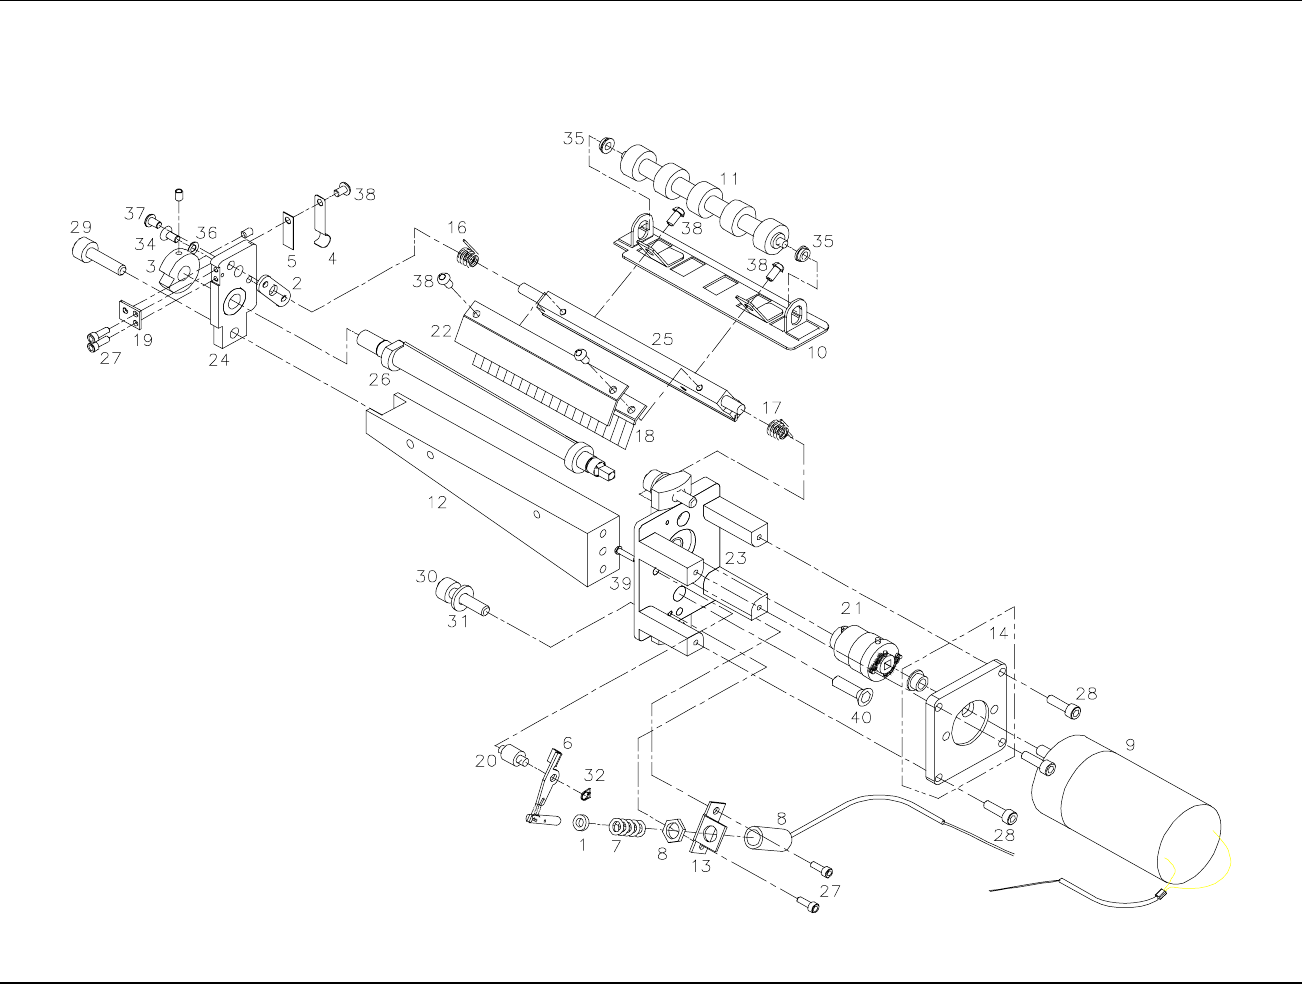 90 assembly drawings users manual model 656 636